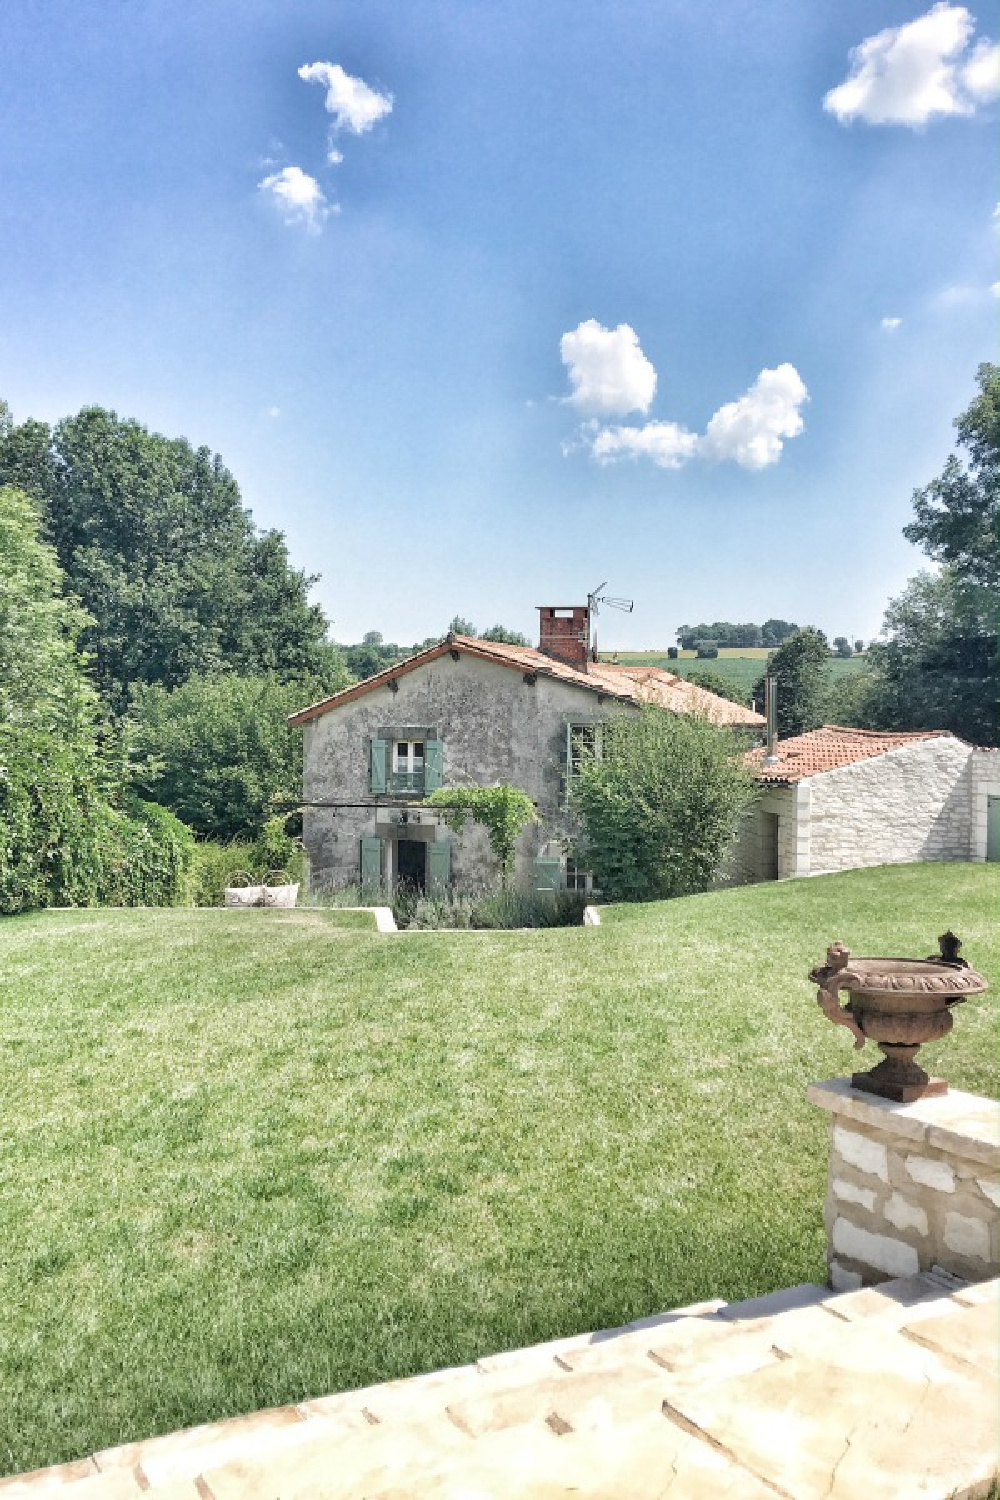 Rustic stone farmhouse with green shutters in French countryside. #vivietmargot #frenchfarmhouse #exterior #farmhouse #houseinFrance #romantichouse #southoffrance #provenceinspiration #greenshutters